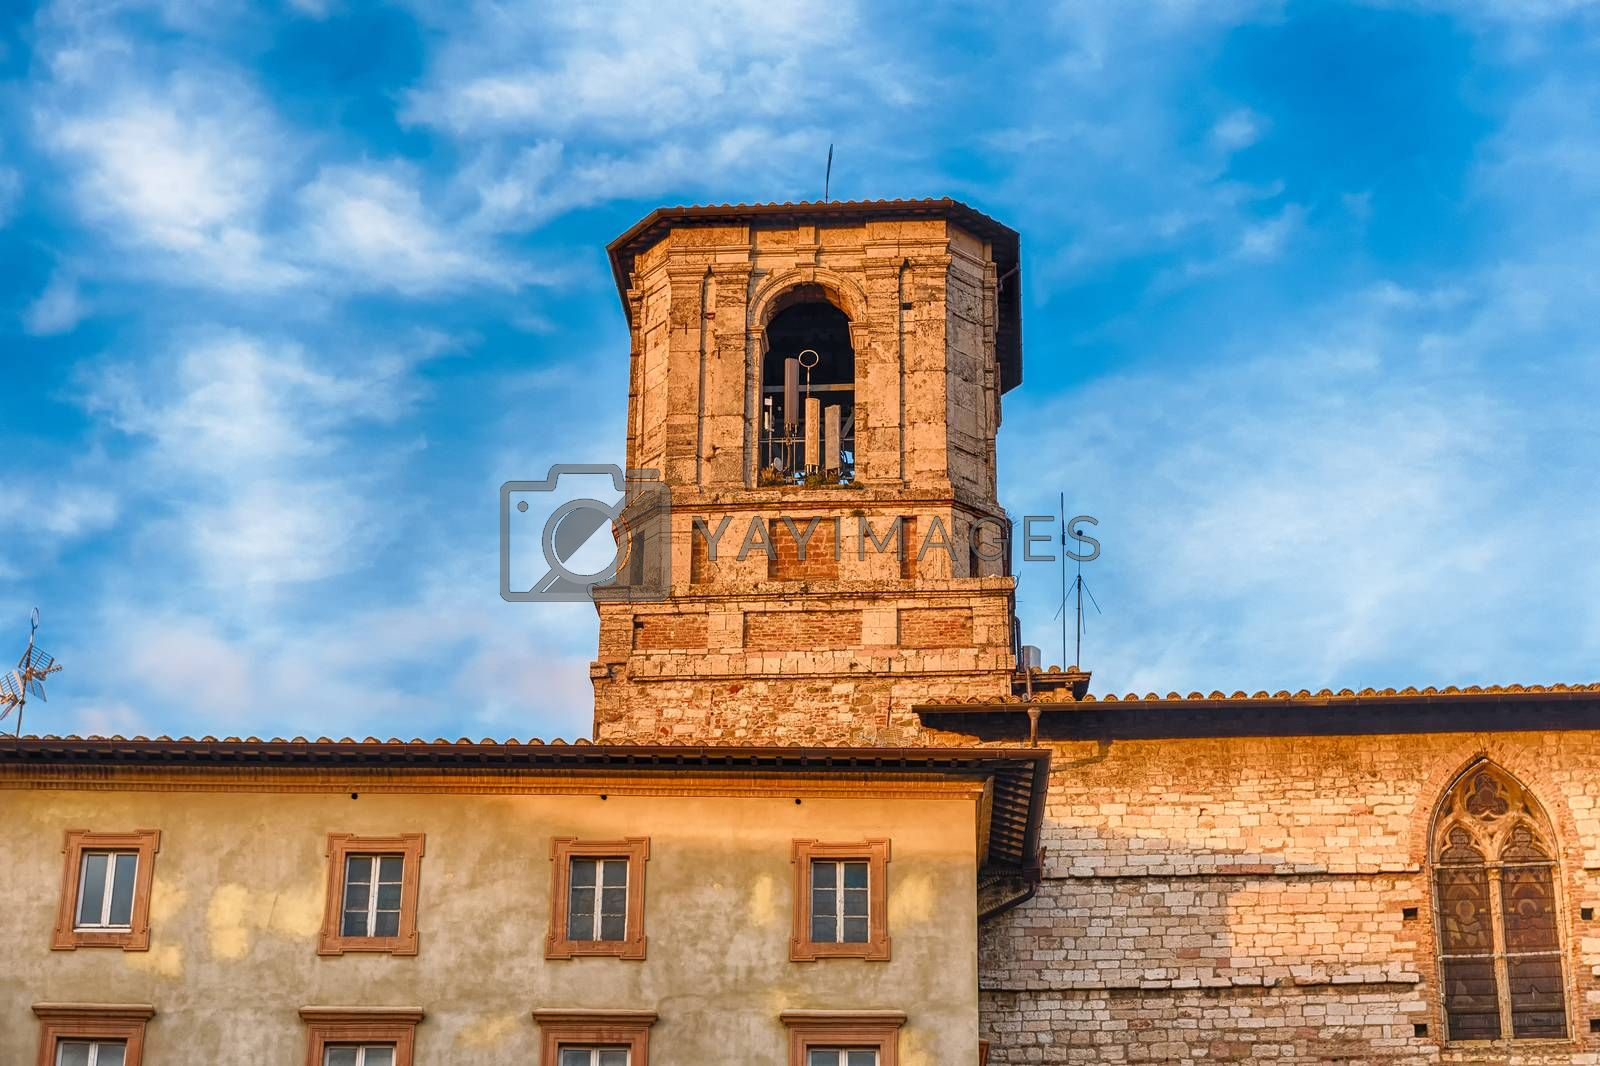 Belltower of the Roman Catholic cathedral in Perugia, Umbria, central Italy, dedicated to Saint Lawrence